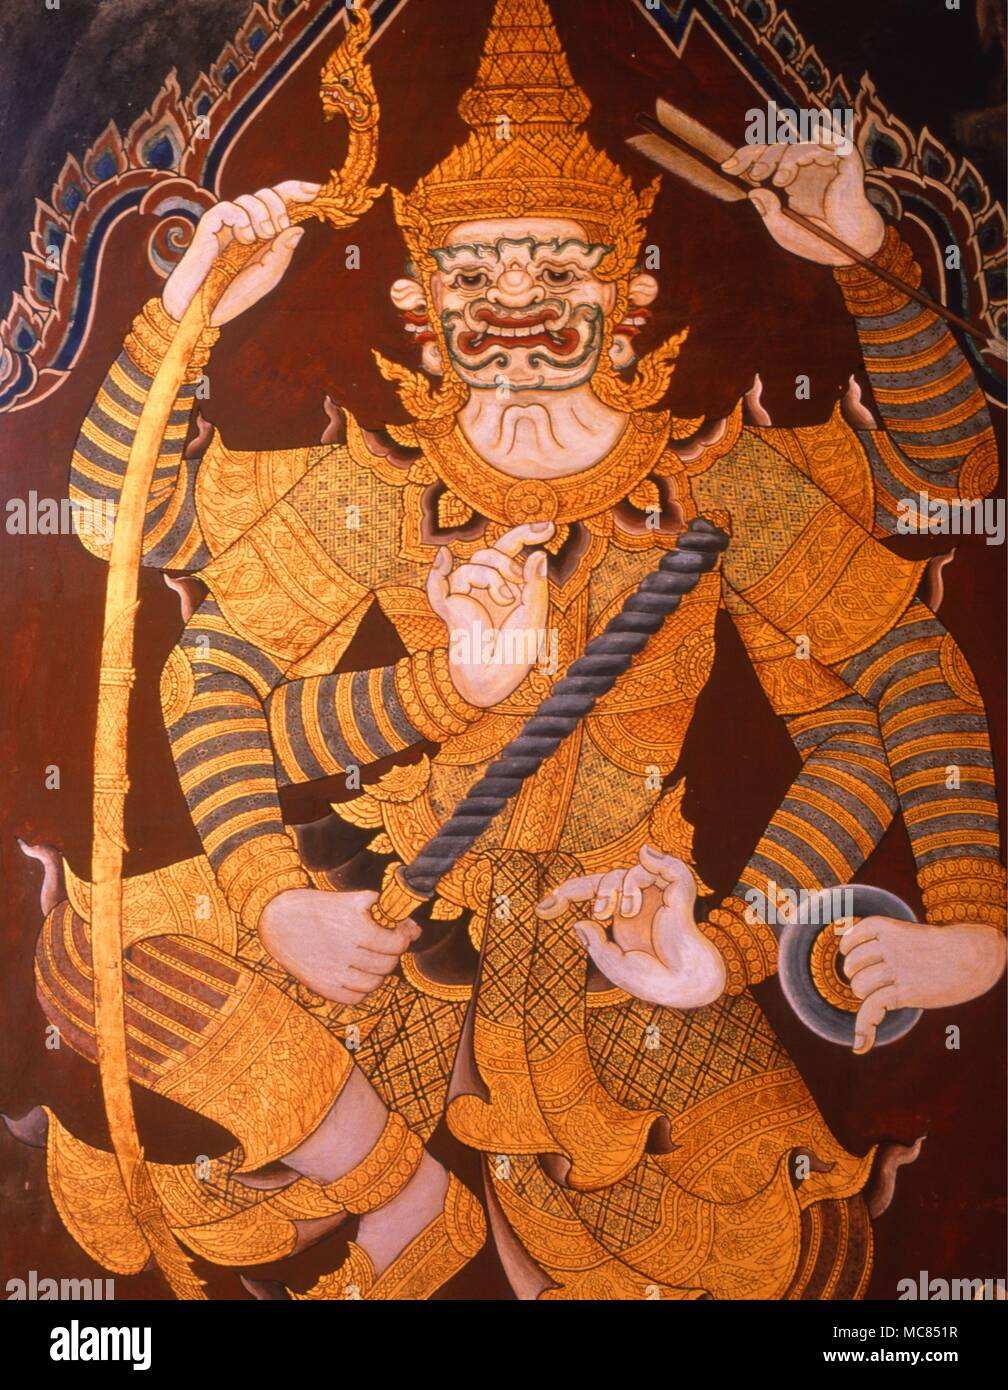 A suix-armed demon king on the intrior frescoes of the Grand Palace at Bangkok, Thailand.  Eighteenth century. - Stock Image